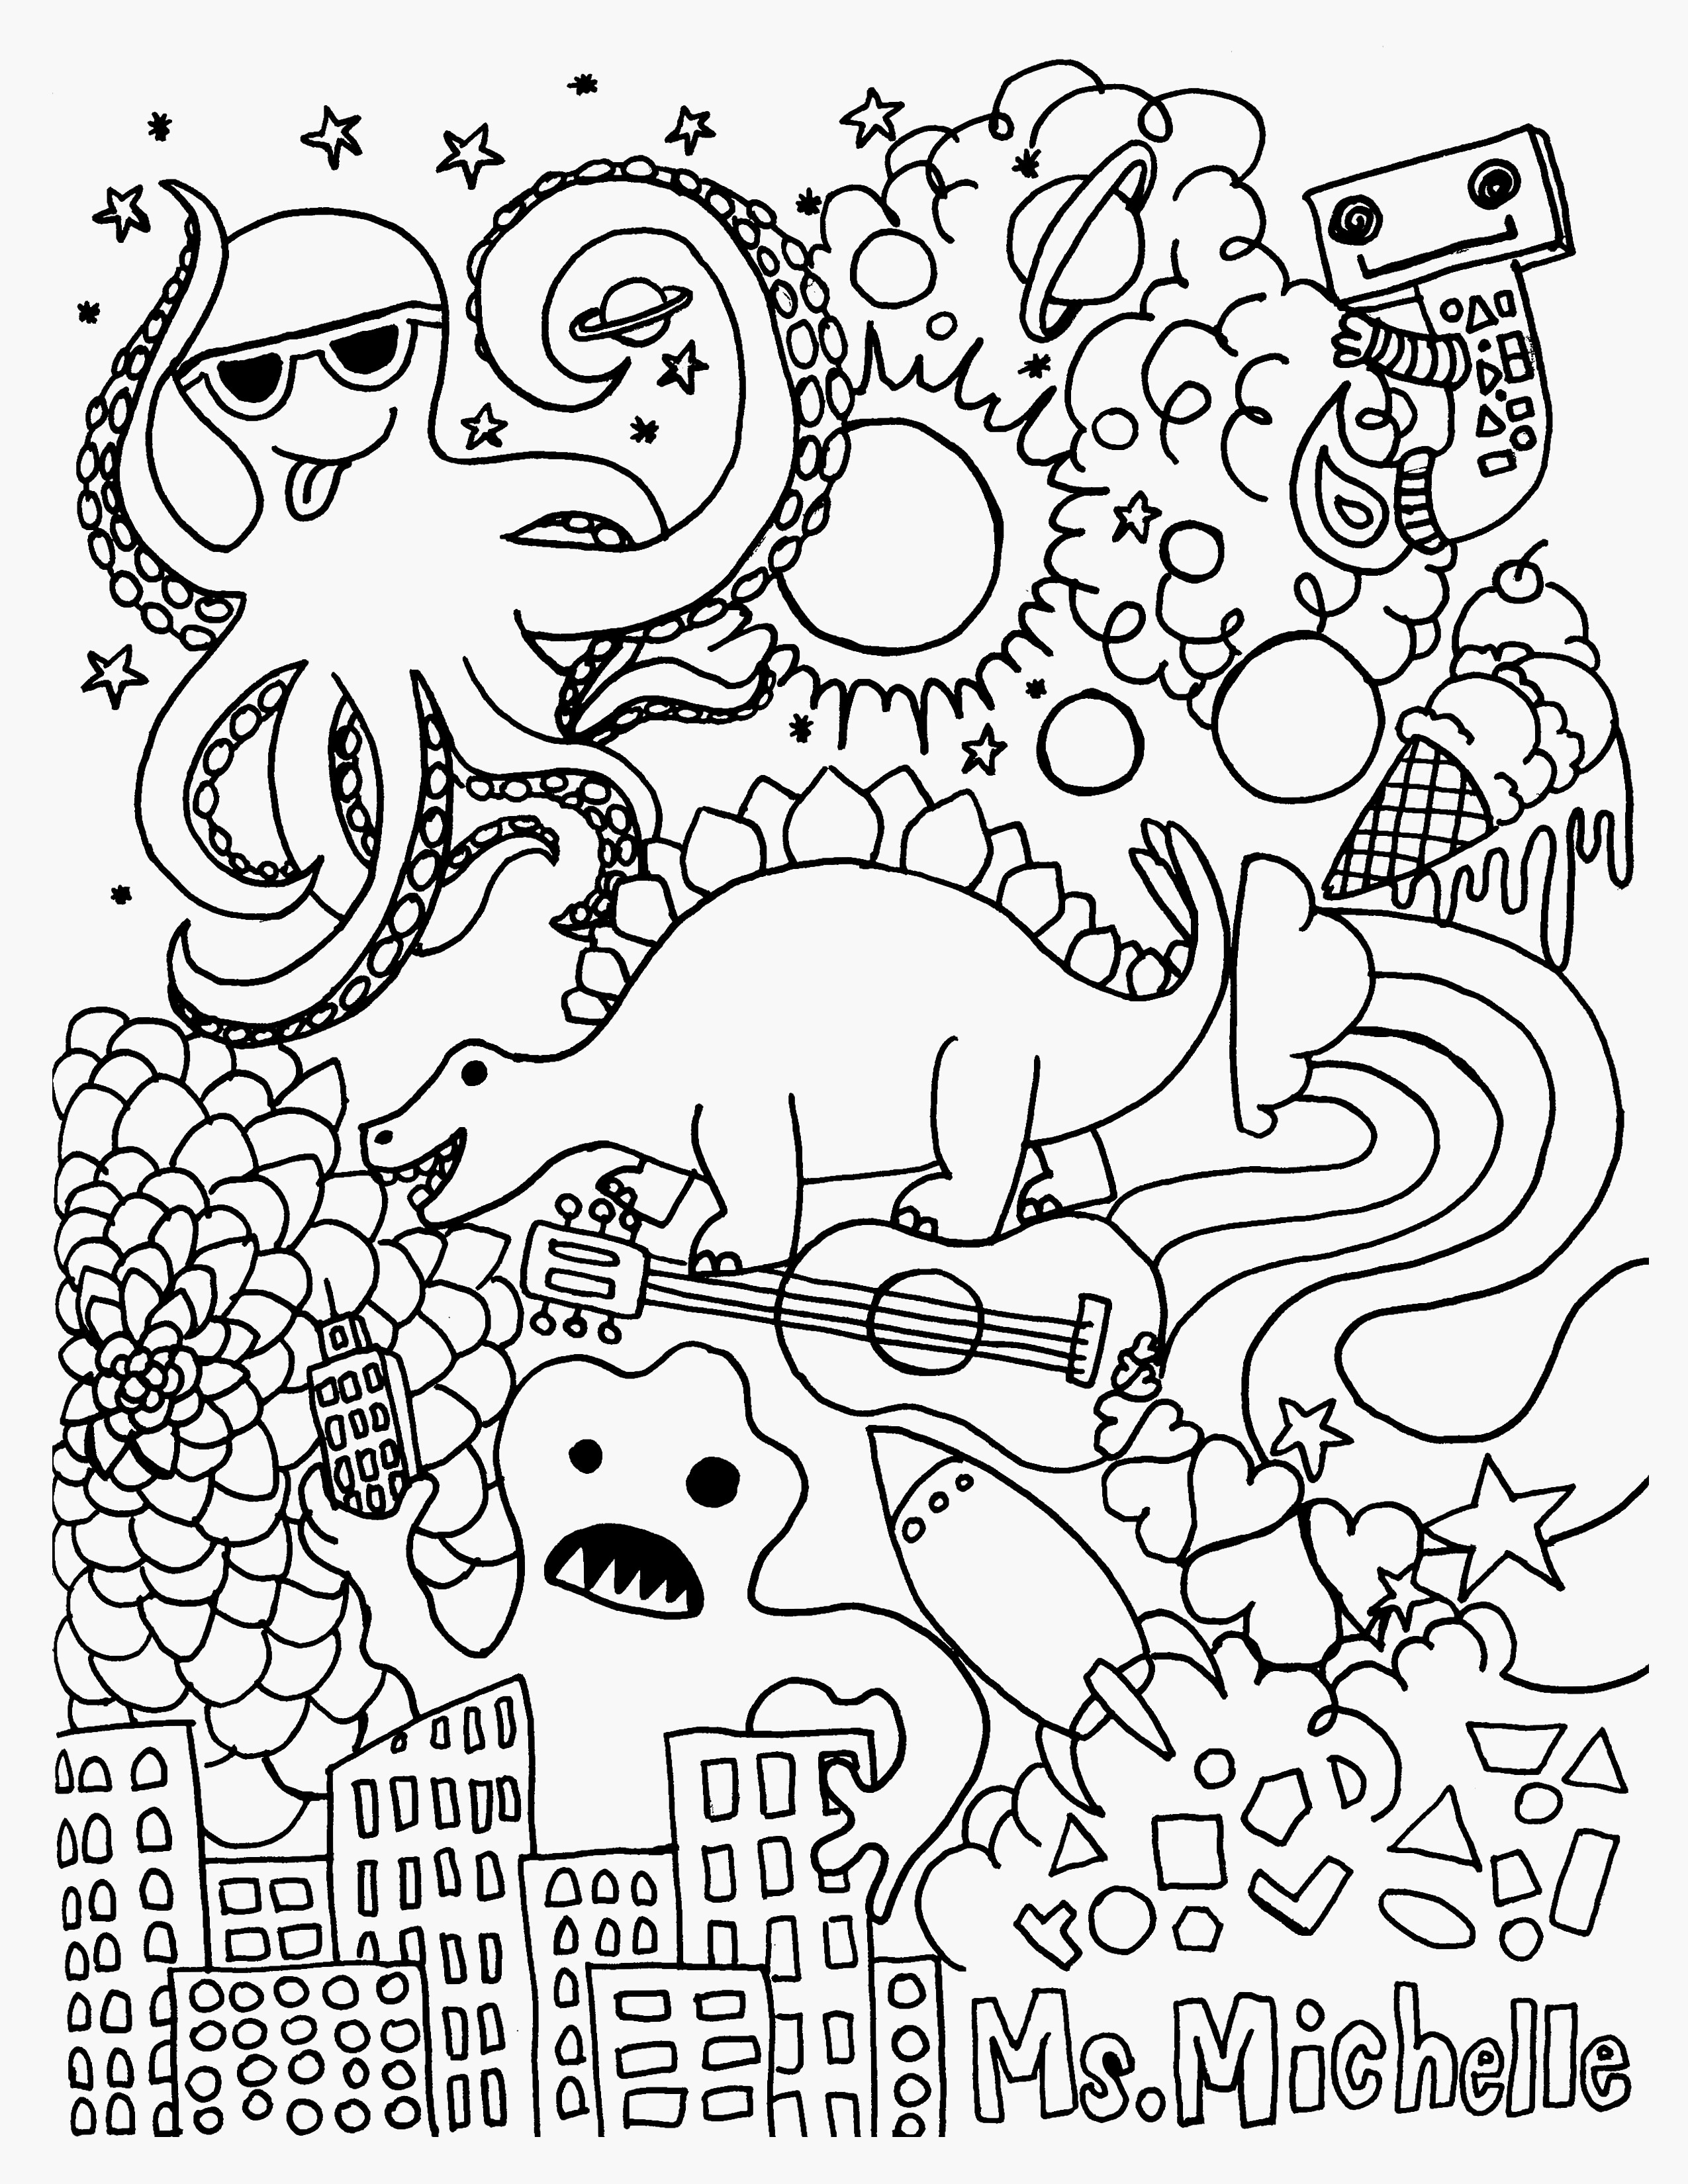 first aid coloring pages Download-Pool Coloring Pages Free Printable Coloring Pages for Adults Aliens 15-q